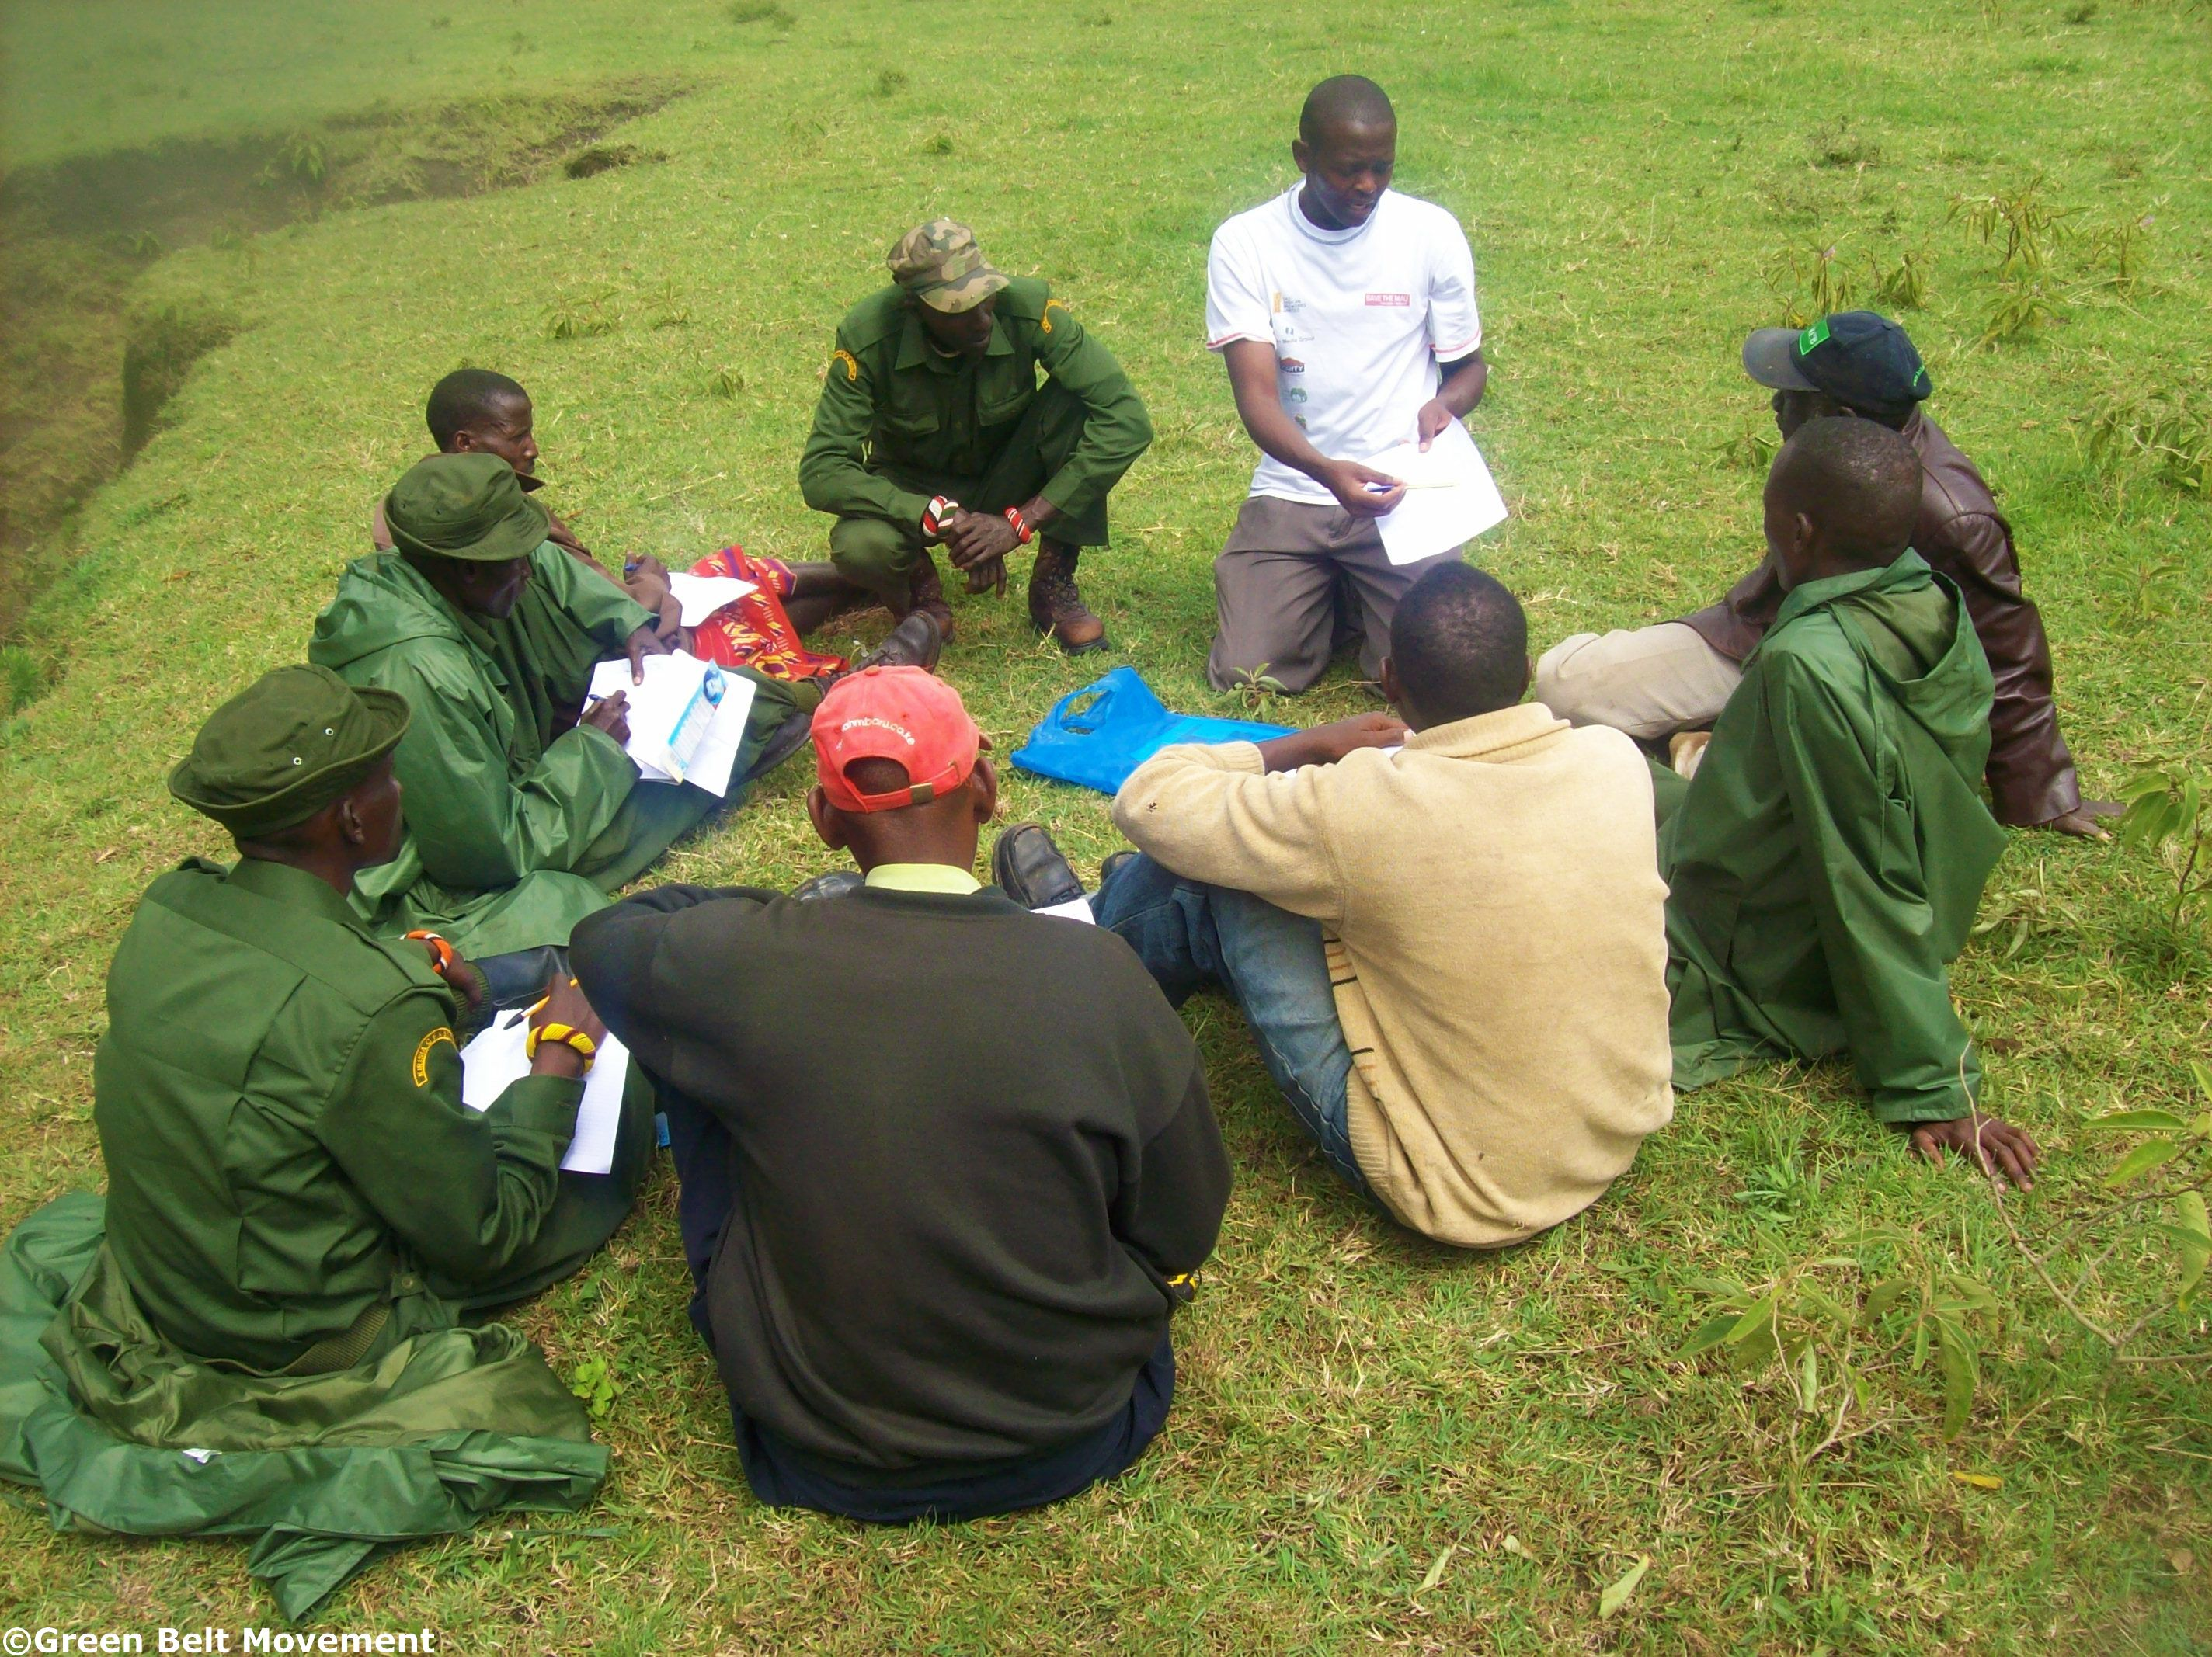 GBM's Joseph Munyao, a GIS and Remote Sensing Analyst (in white) teaches the GVs how to interpret mapping